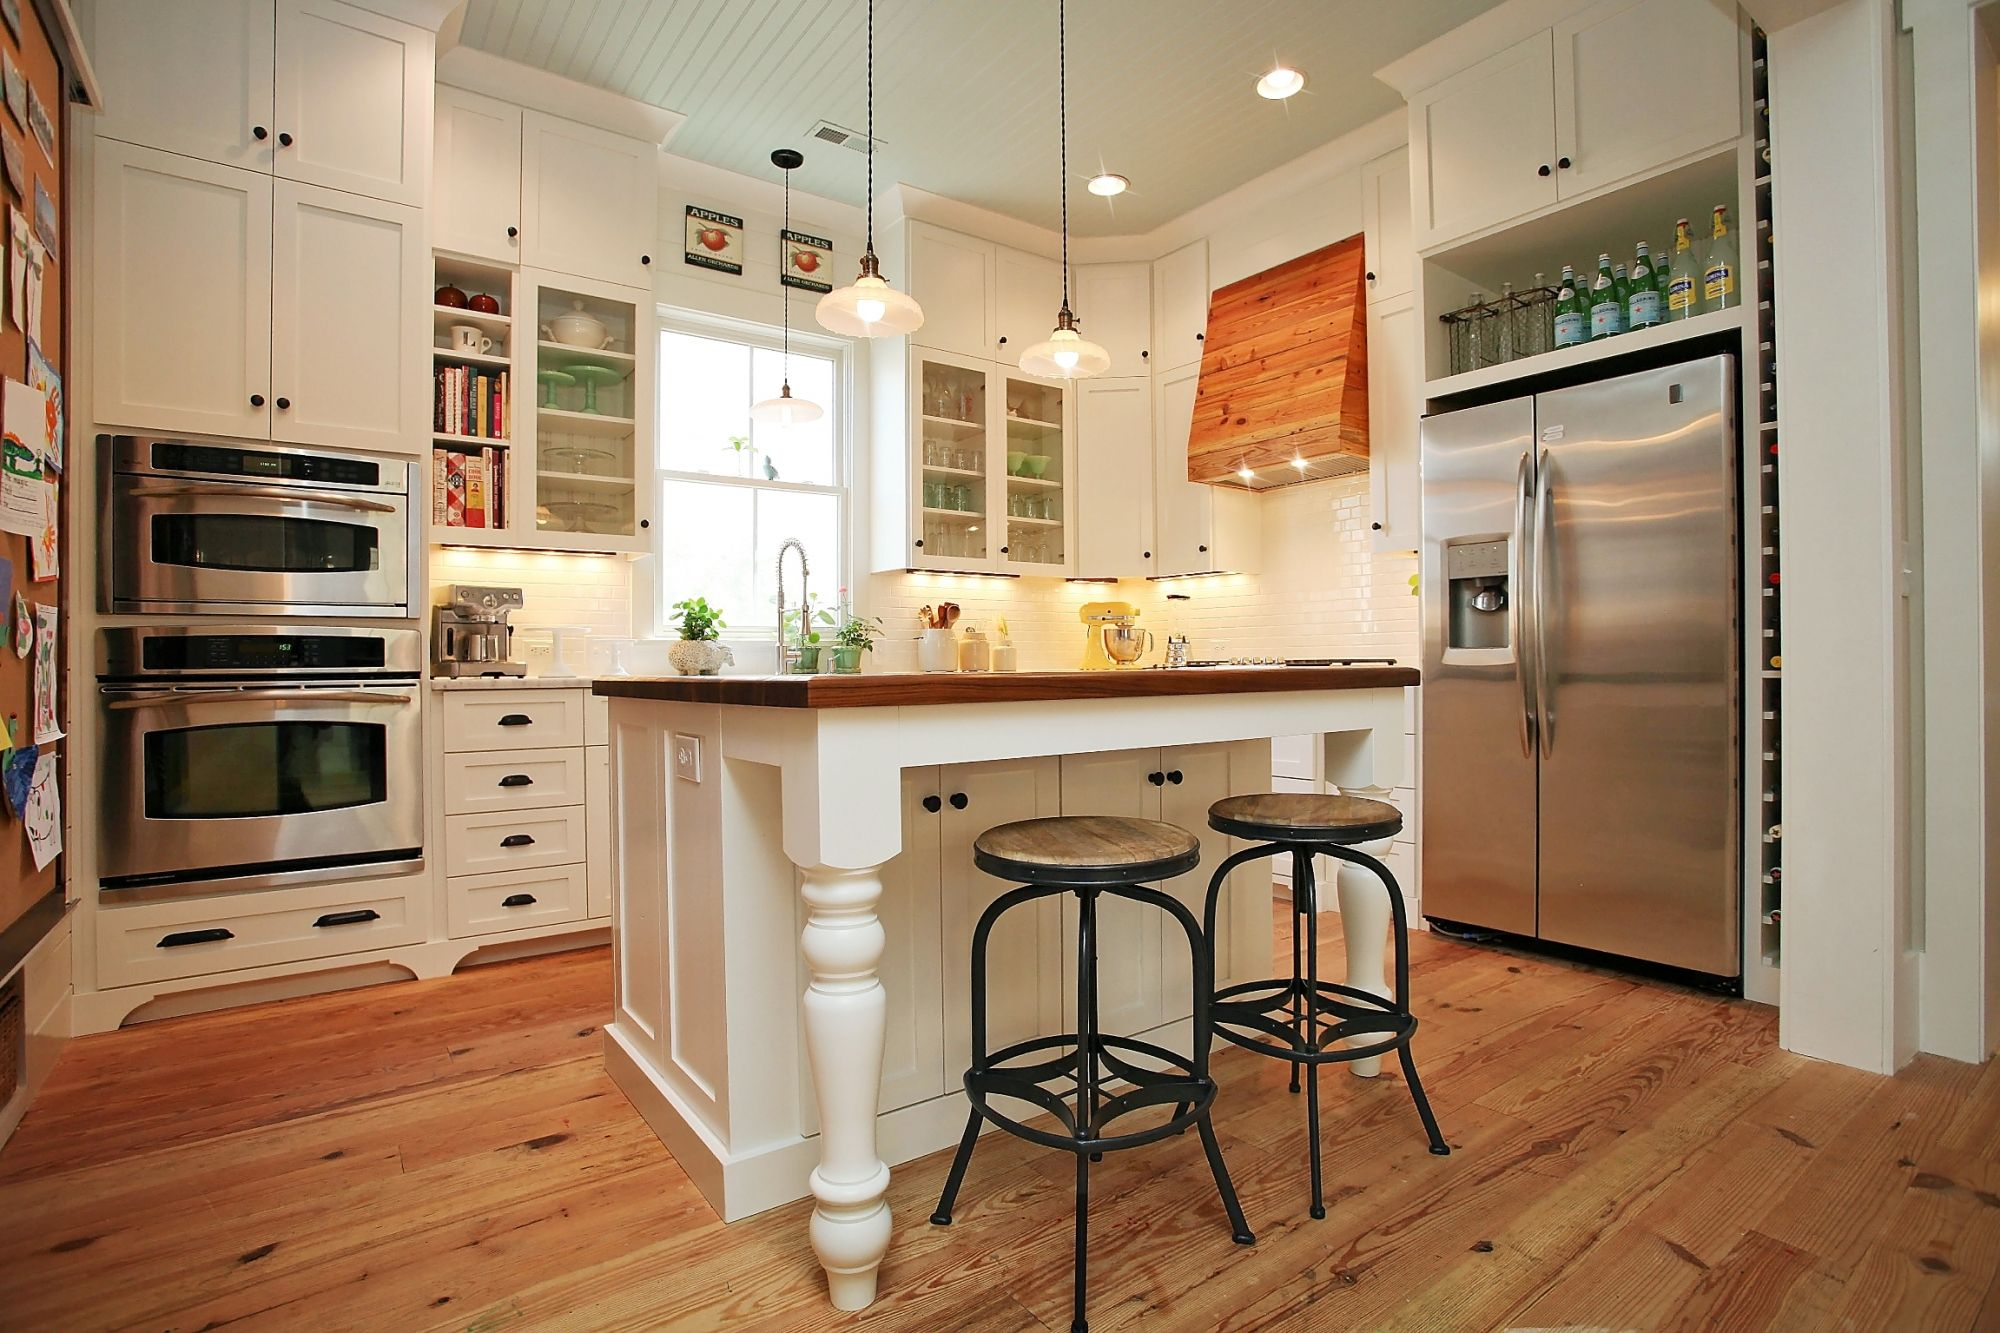 storage smart cabinets go all the way to the 10 ceiling giving the homeowner extra room f on kitchen cabinets to the ceiling id=48111